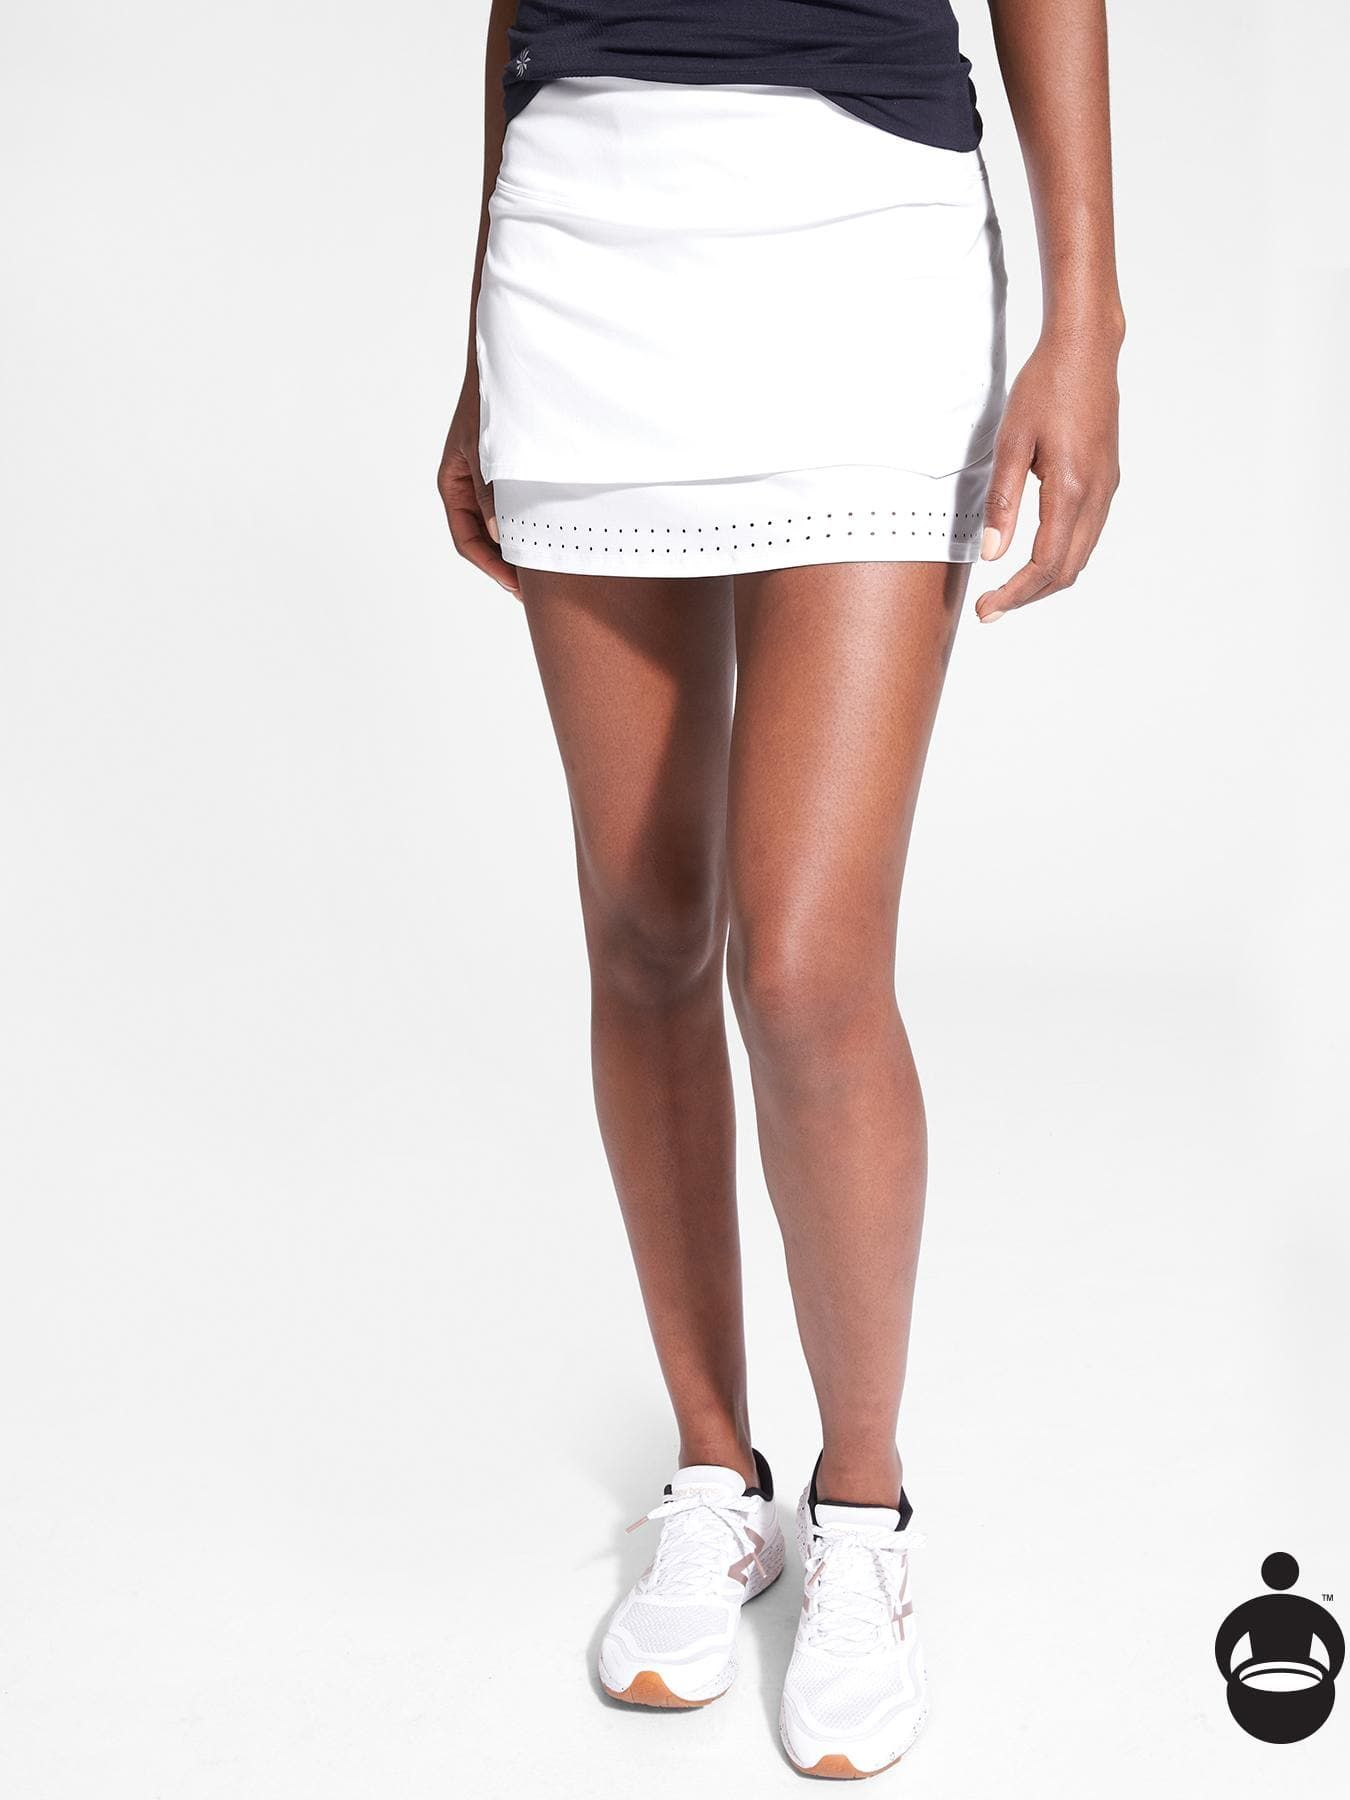 c757d08c01 Stealth TruCool Skort | Athleta. Stealth TruCool Skort | Athleta Golf Skirts,  Mini Skirts, White ...